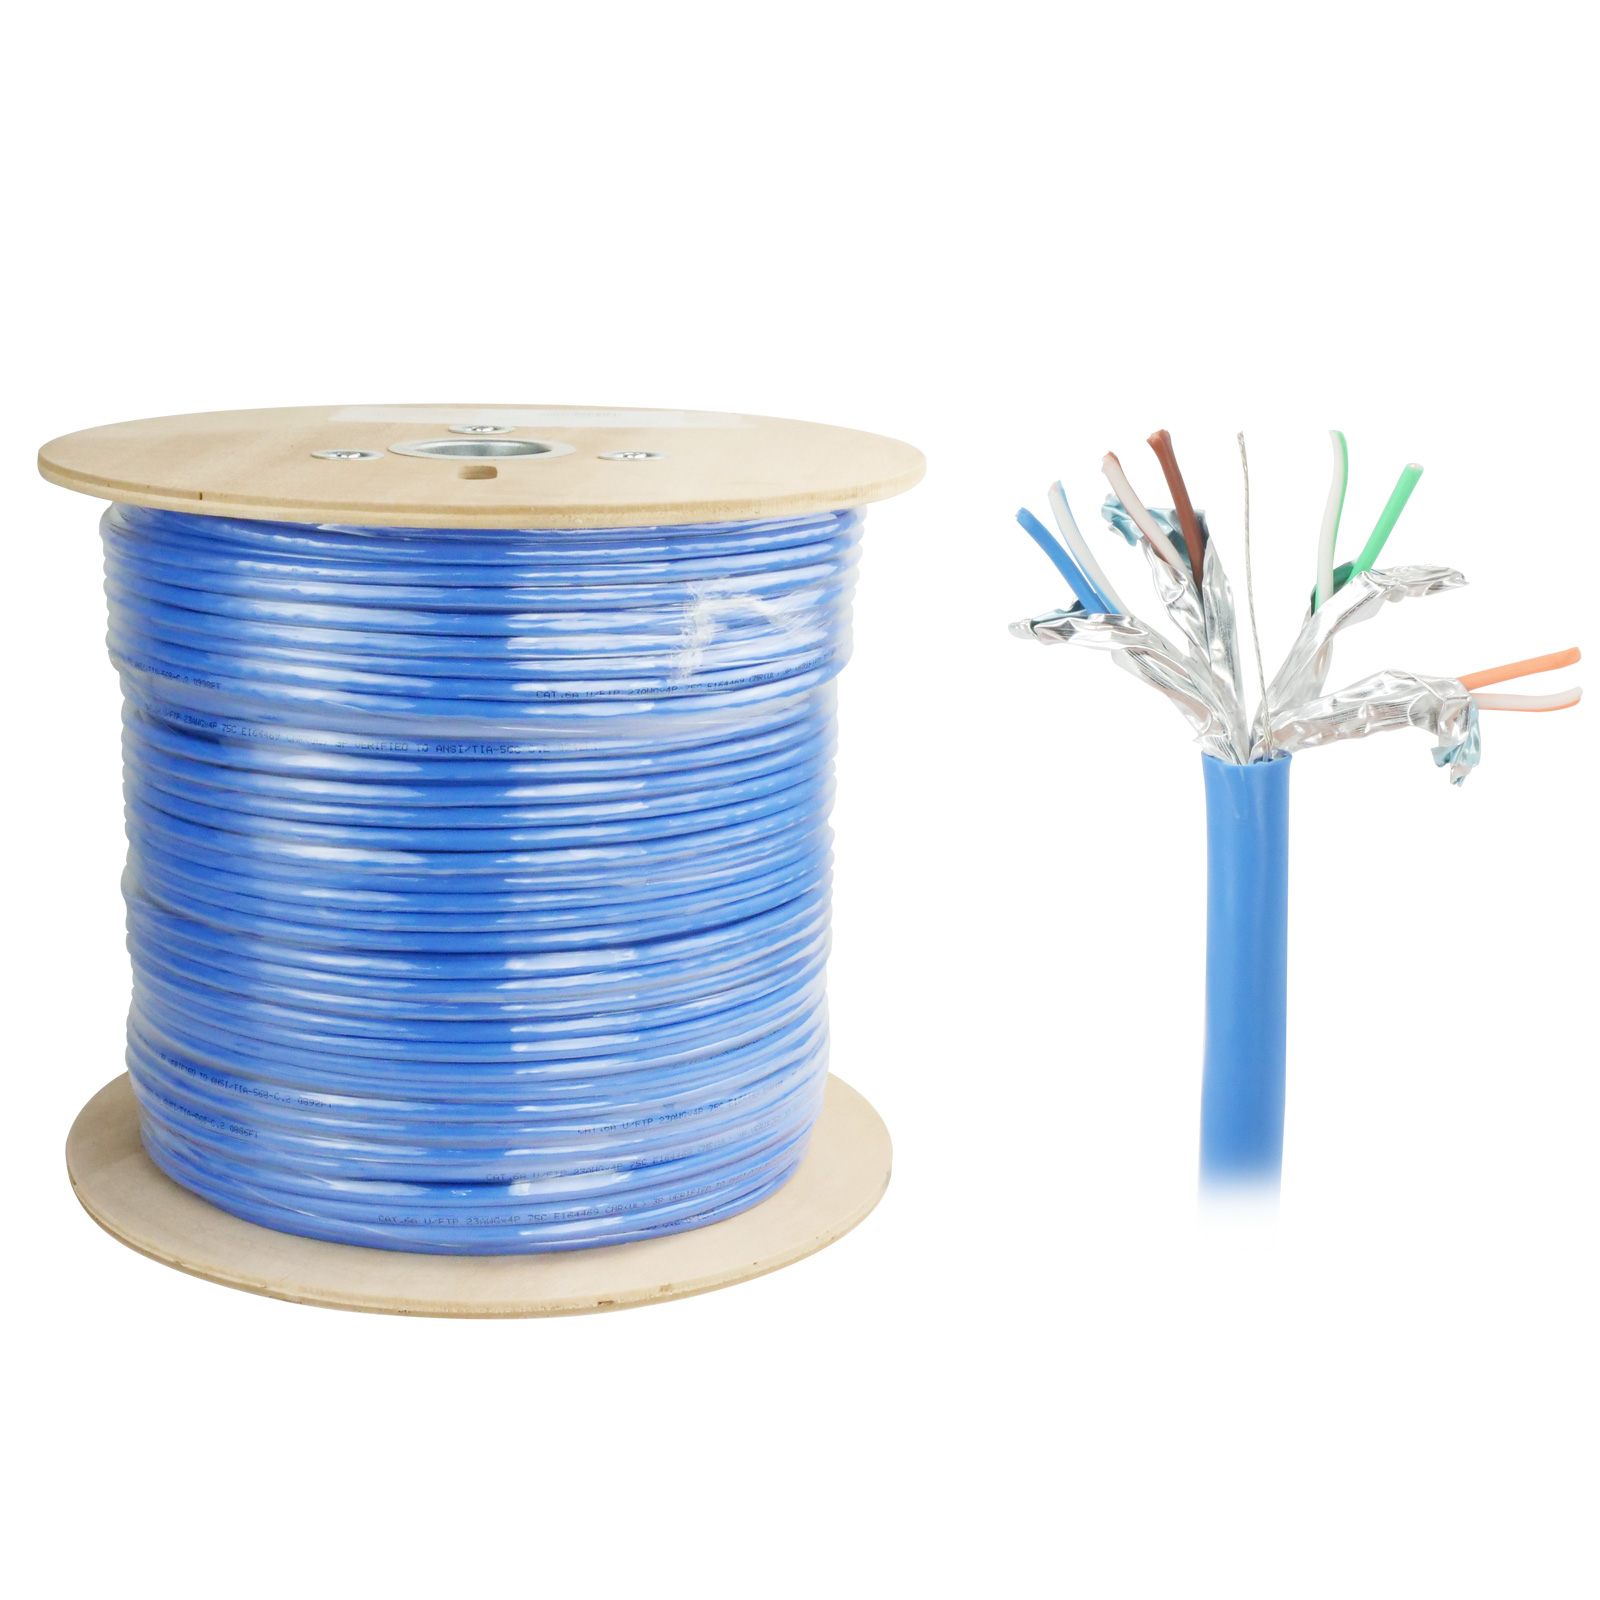 1000ft Cat6a Bare Copper 23AWG CMR U/FTP Shielded Bulk Cable, 7.1mm OD, Solid Wire - Blue